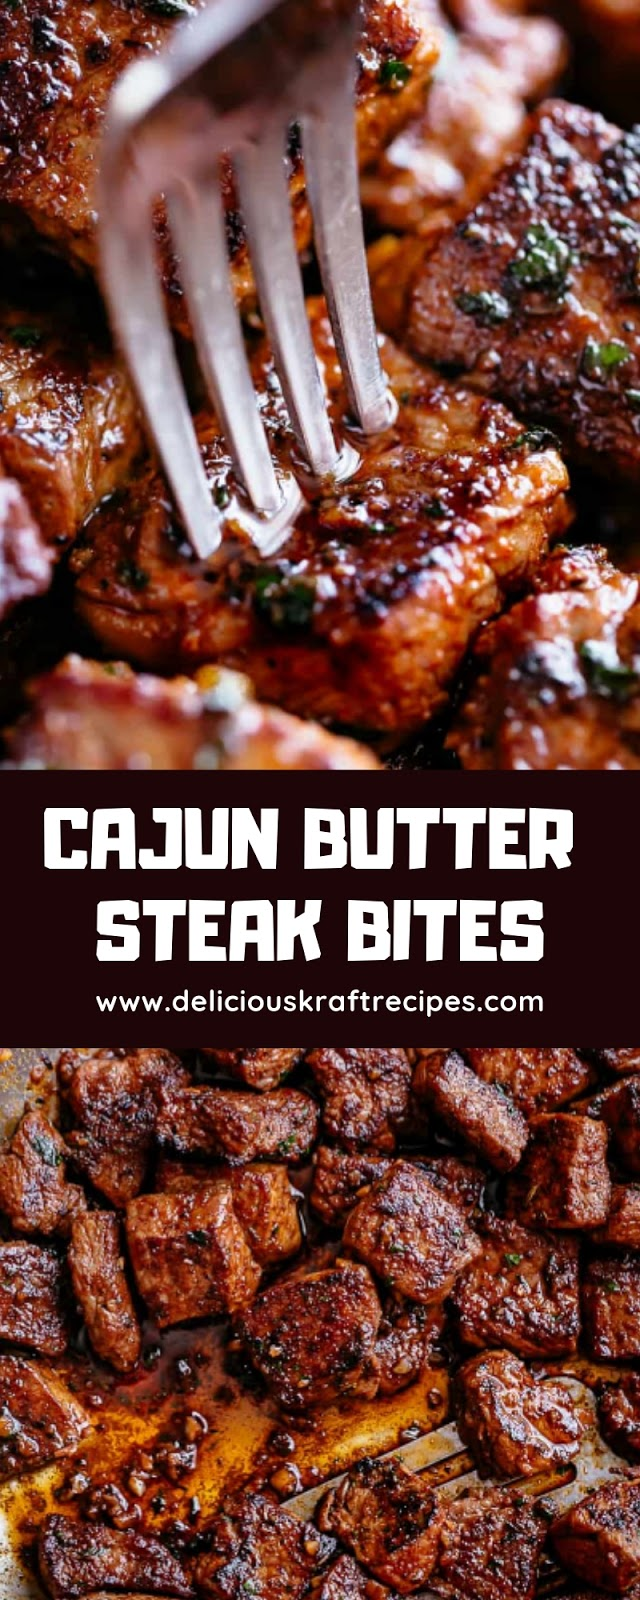 CAJUN BUTTER STEAK BITES